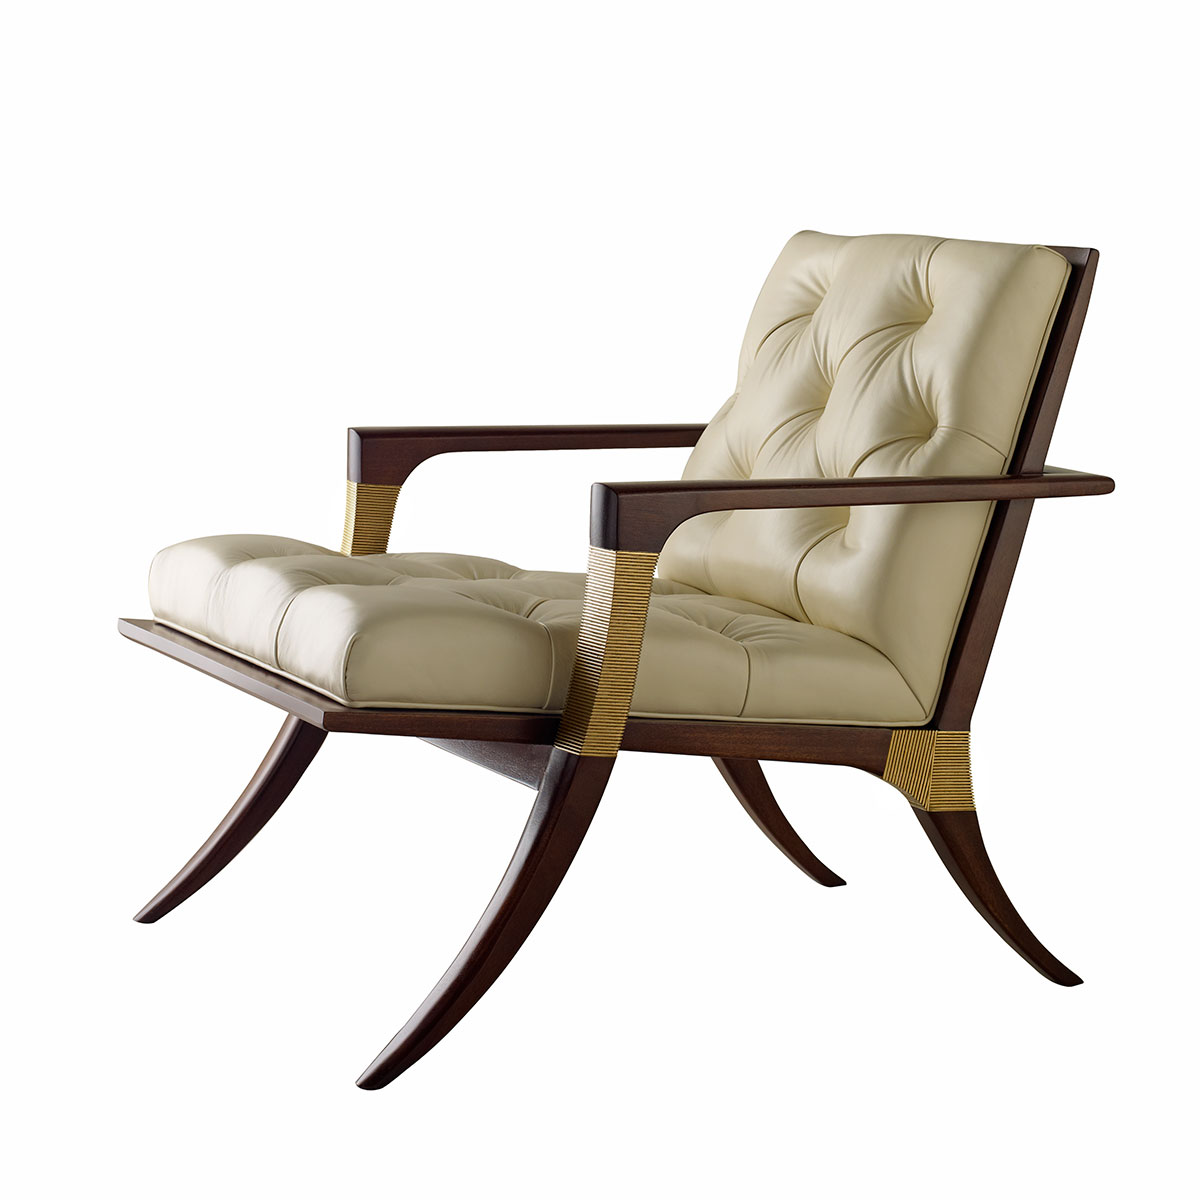 ATHENS LOUNGE CHAIR